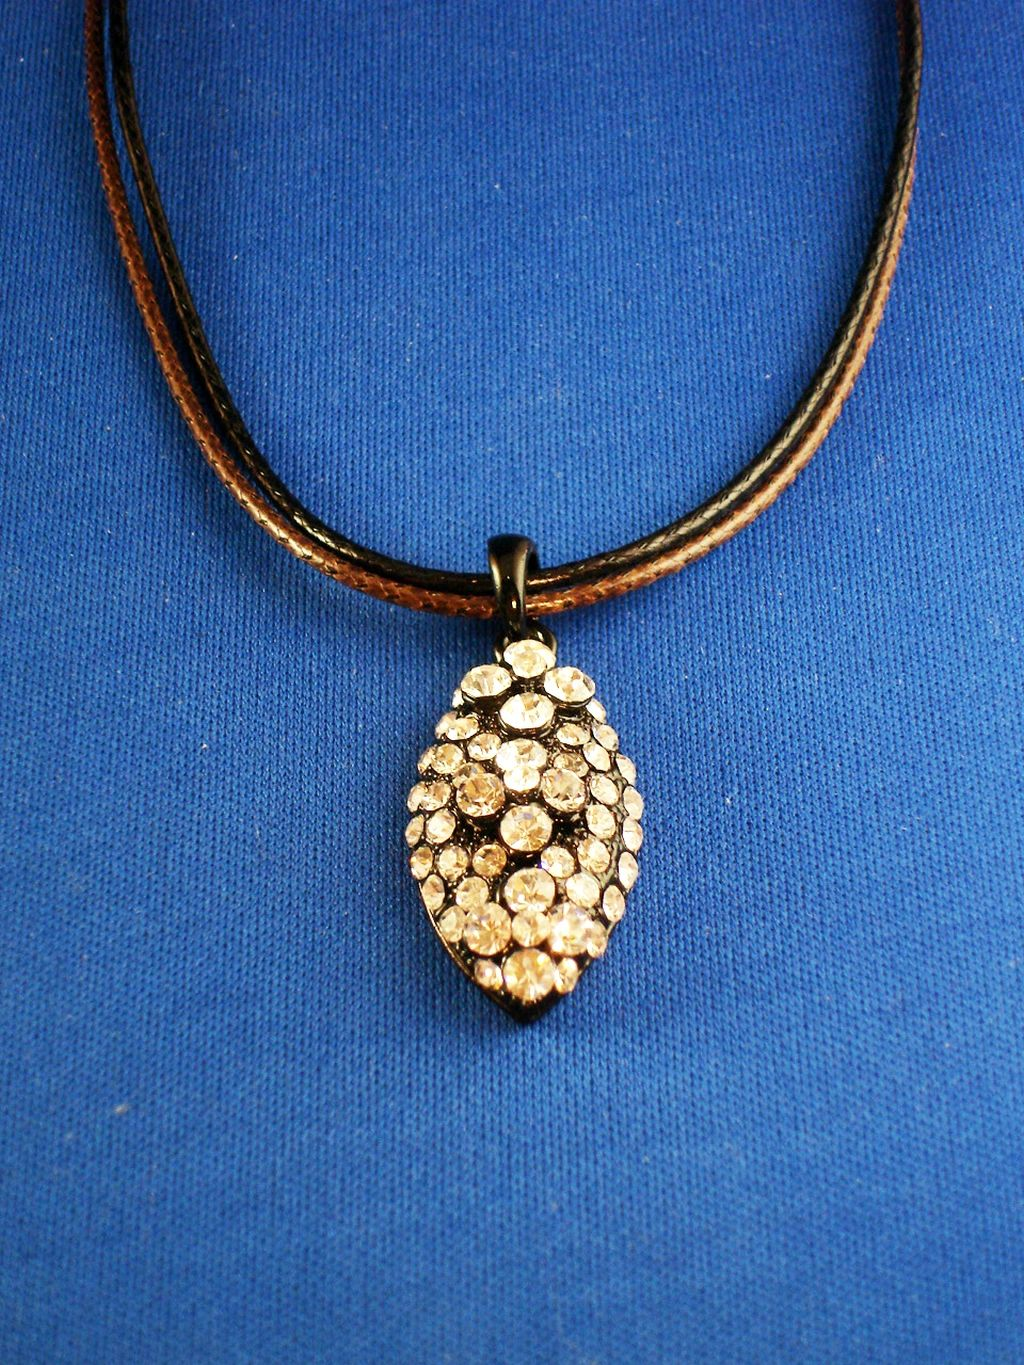 Clear Austrian Crystals Oval Pendant Necklace, Black & Brown Cord, European Faashion Jewelry